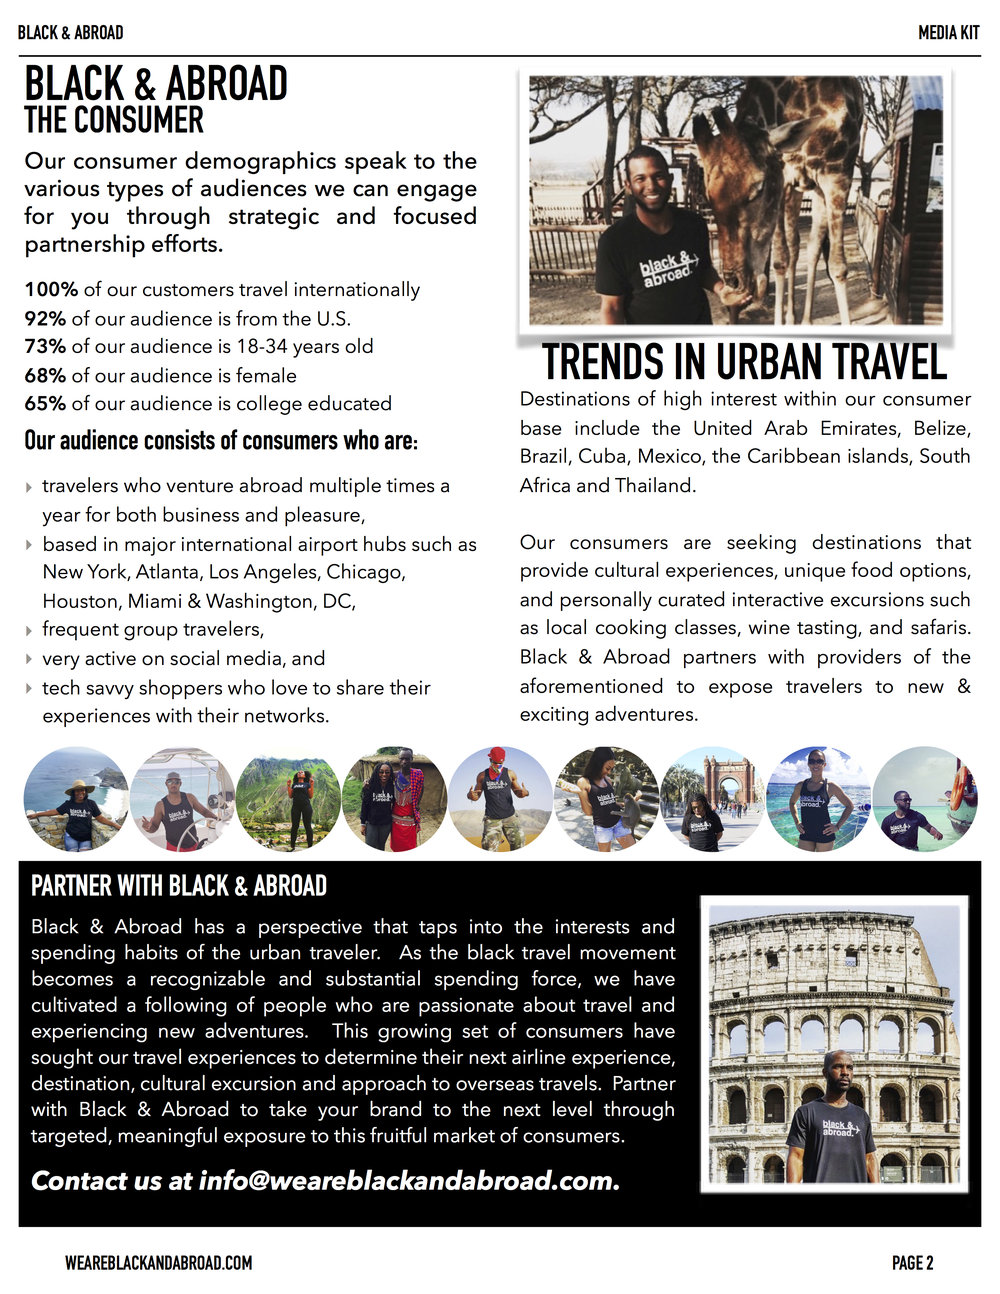 Black and Abroad Media Kit JAN 2016 PAGE 2.jpg